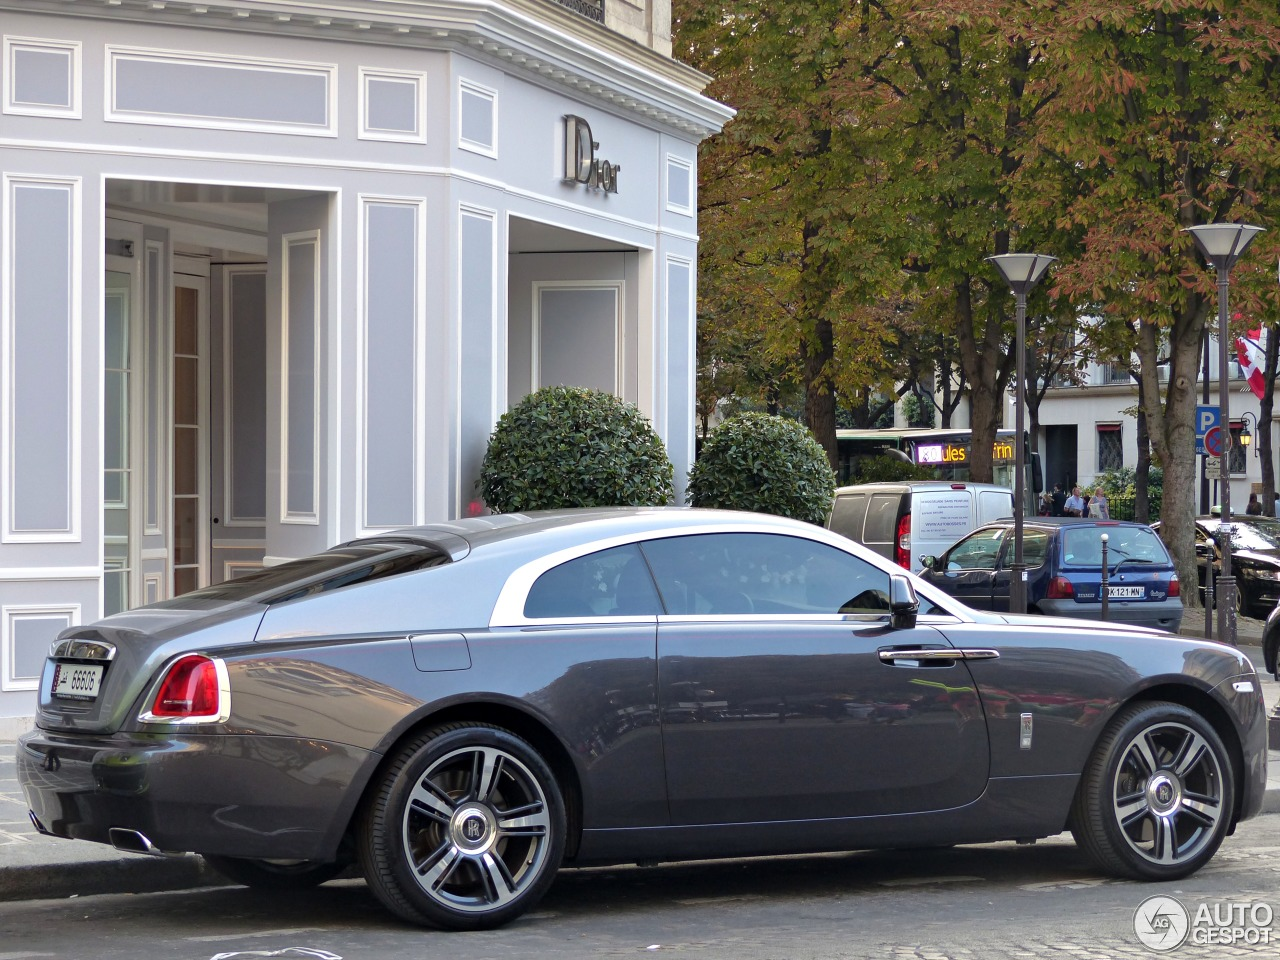 qatari rolls royce wraith in france qatar auto automotive trading cars used and new sale. Black Bedroom Furniture Sets. Home Design Ideas